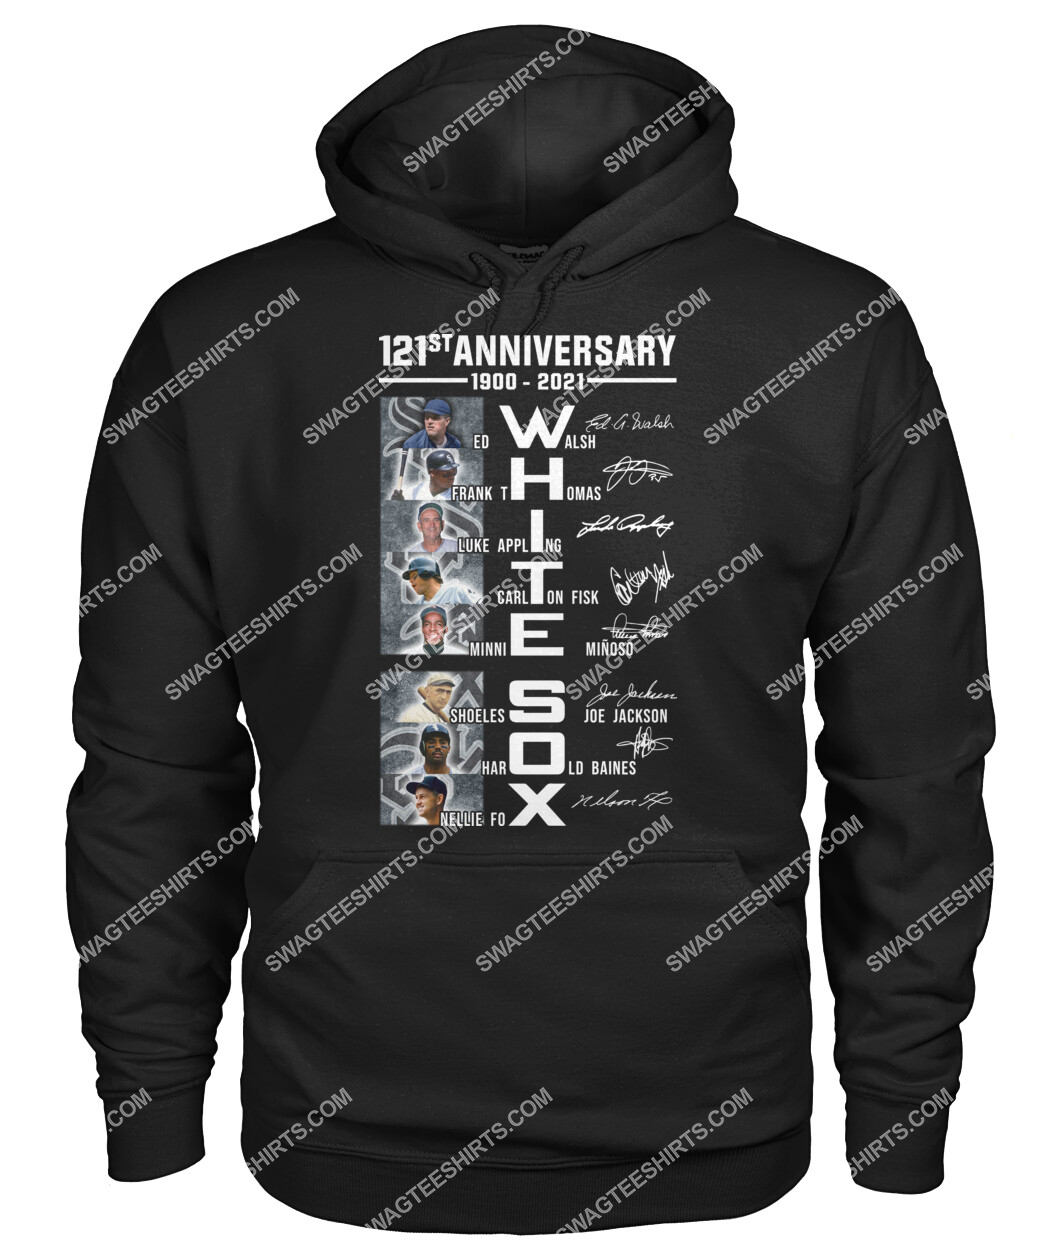 the chicago white sox 121st anniversary 1900 2021 signatures hoodie 1